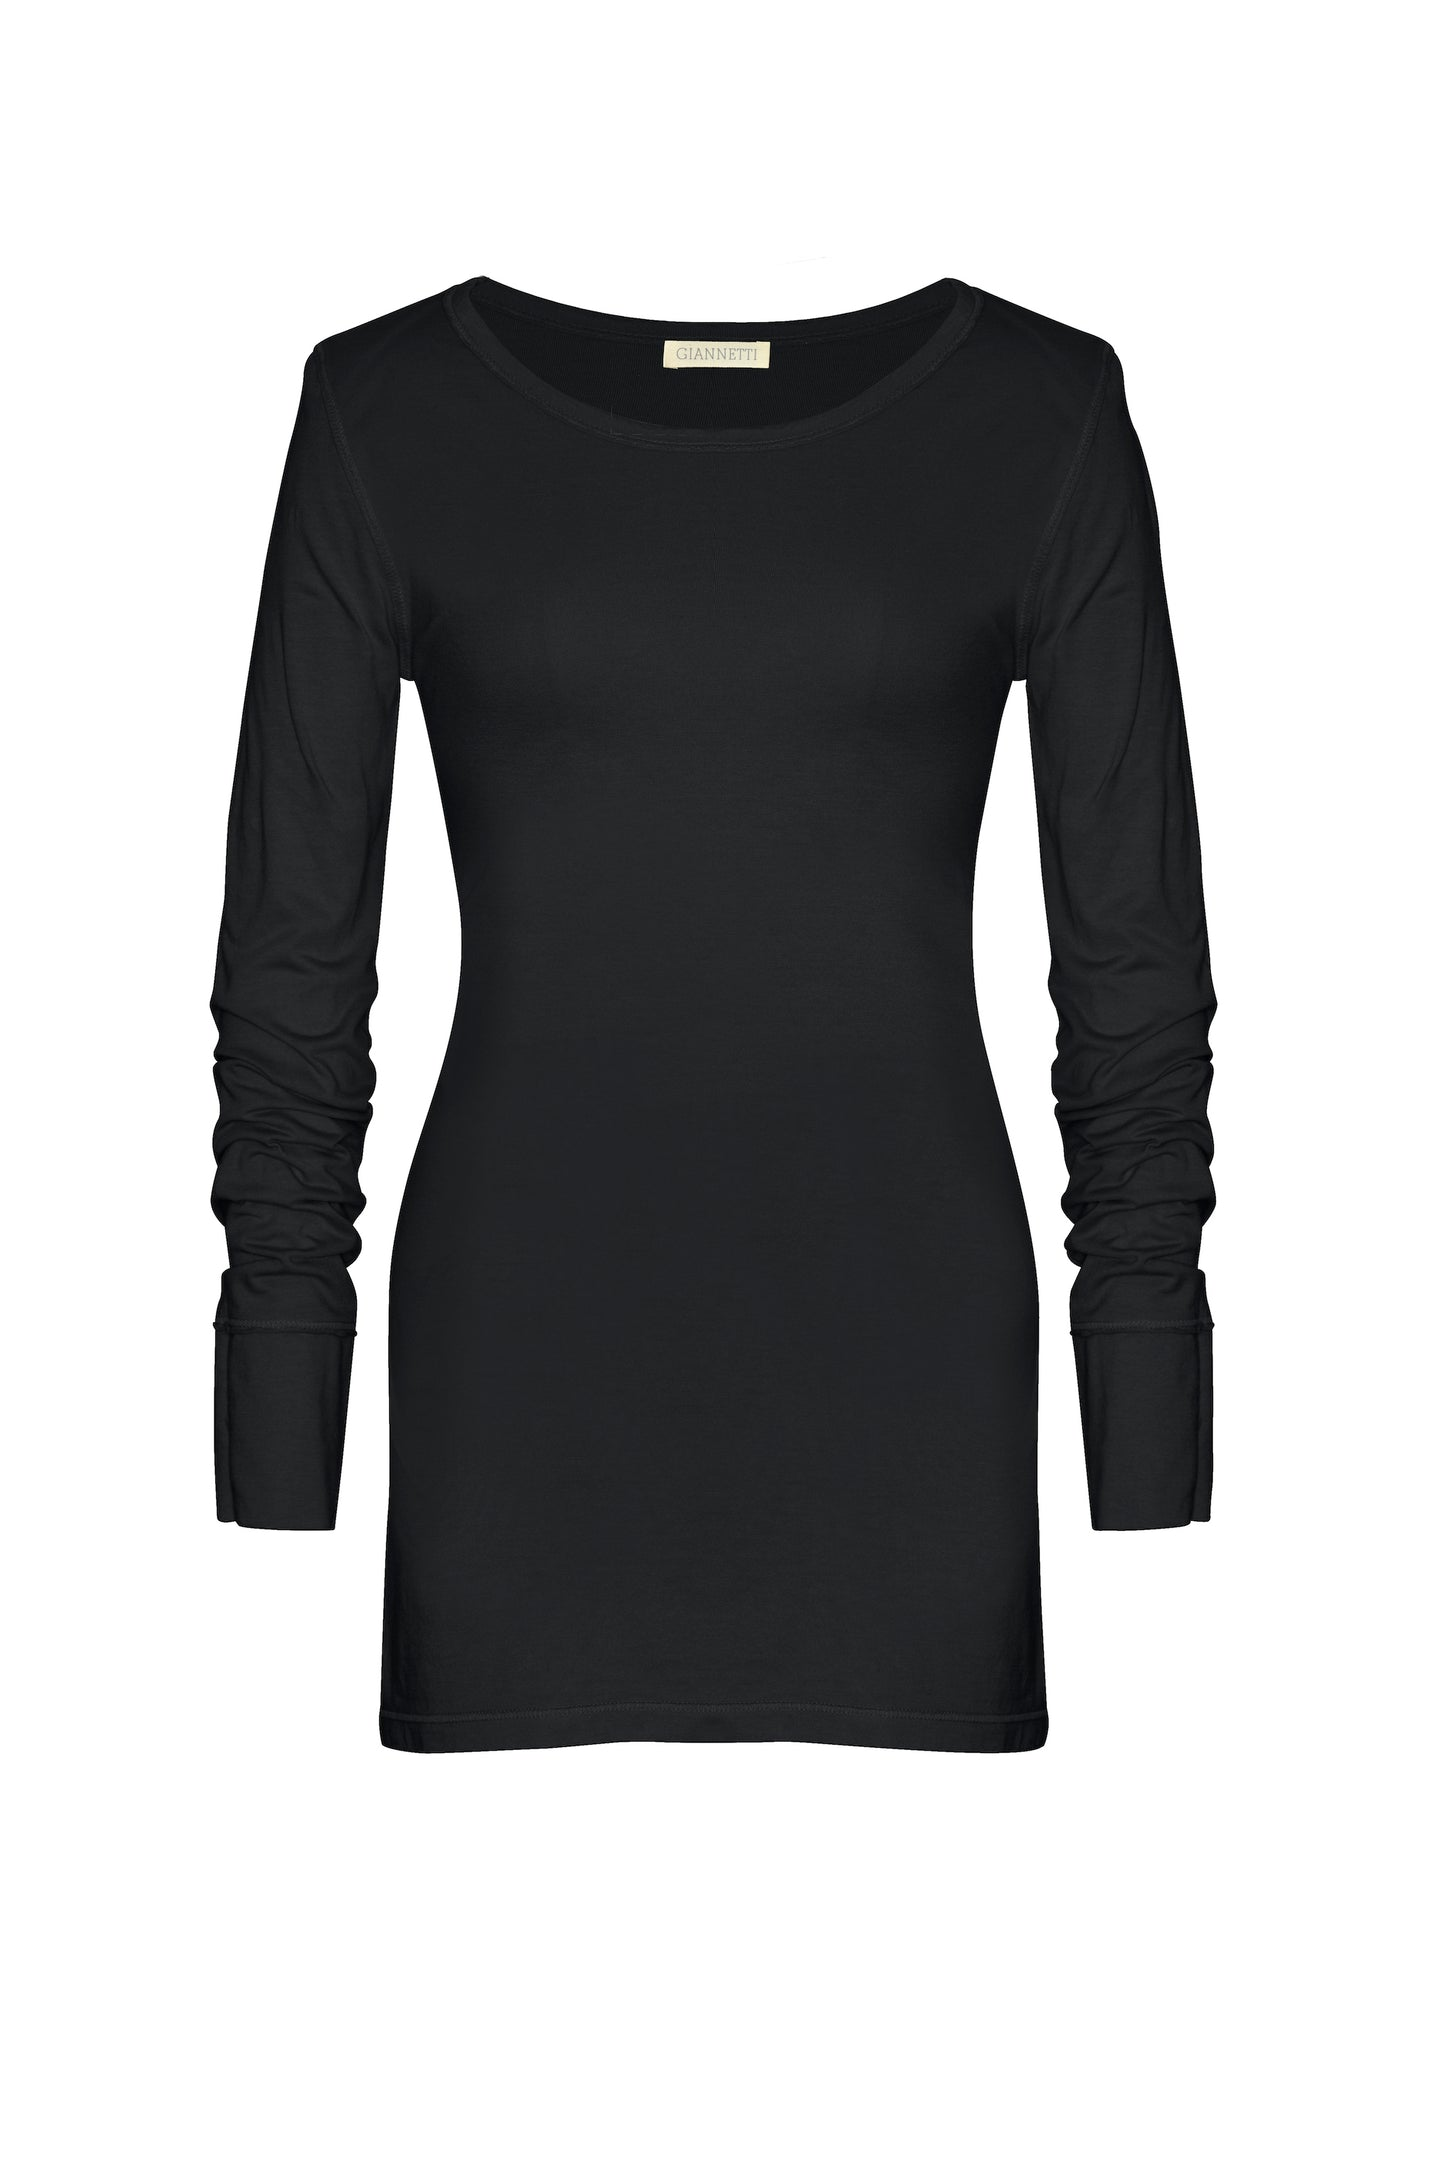 Black Long Sleeve Tee Shirt